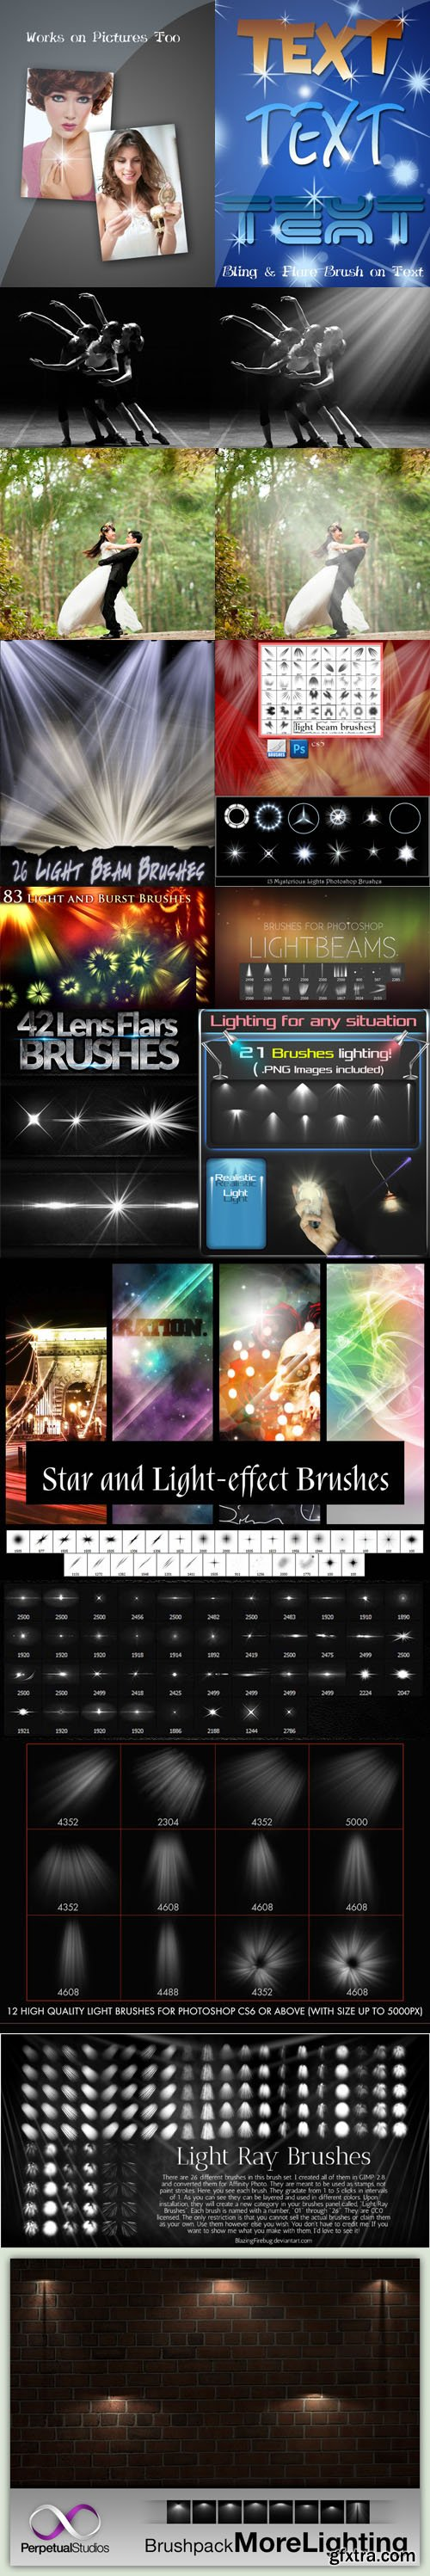 365 Light & Lens Flare Photoshop Brushes Collection